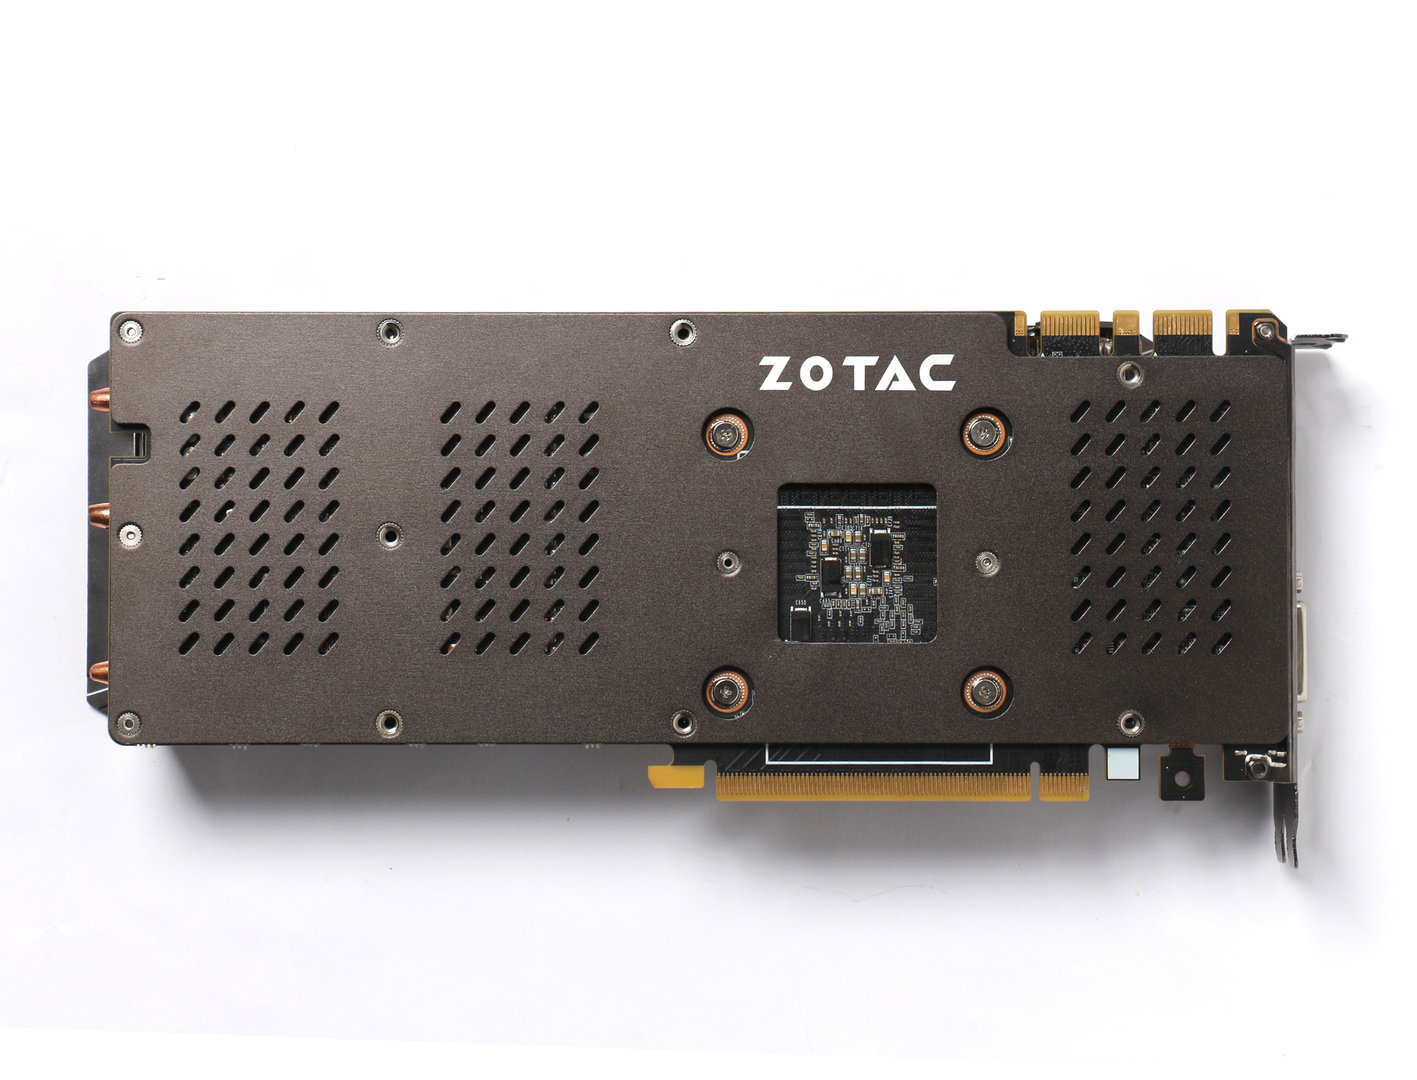 Zotac GeForce GTX 970 AMP! Omega Core Edition